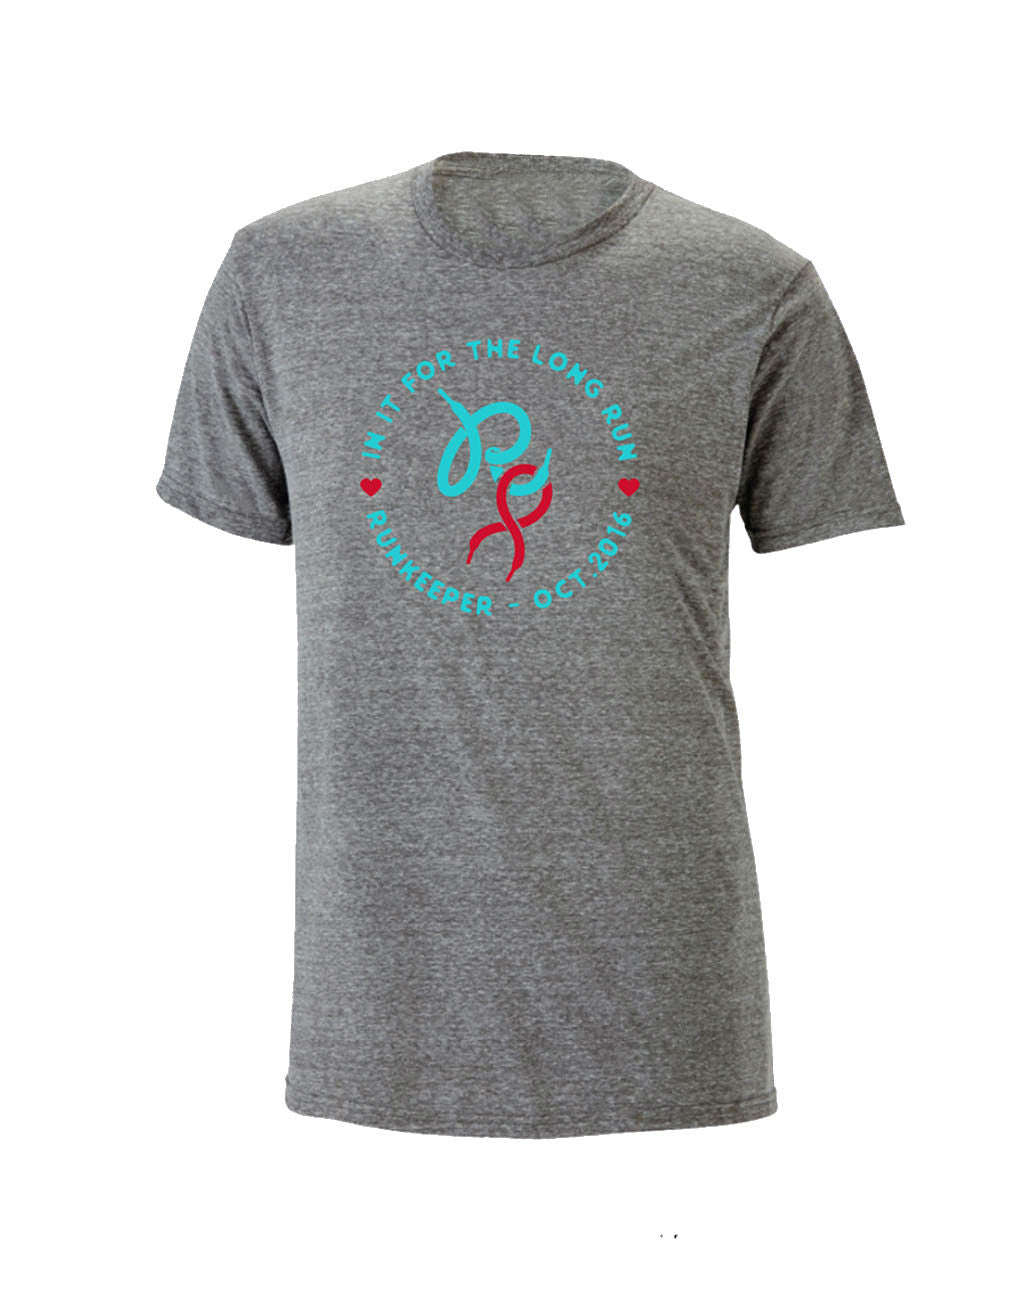 Runkeeper The Long Run Tee for Cancer Awareness (Red Ribbon)Graphite Heather_master_image